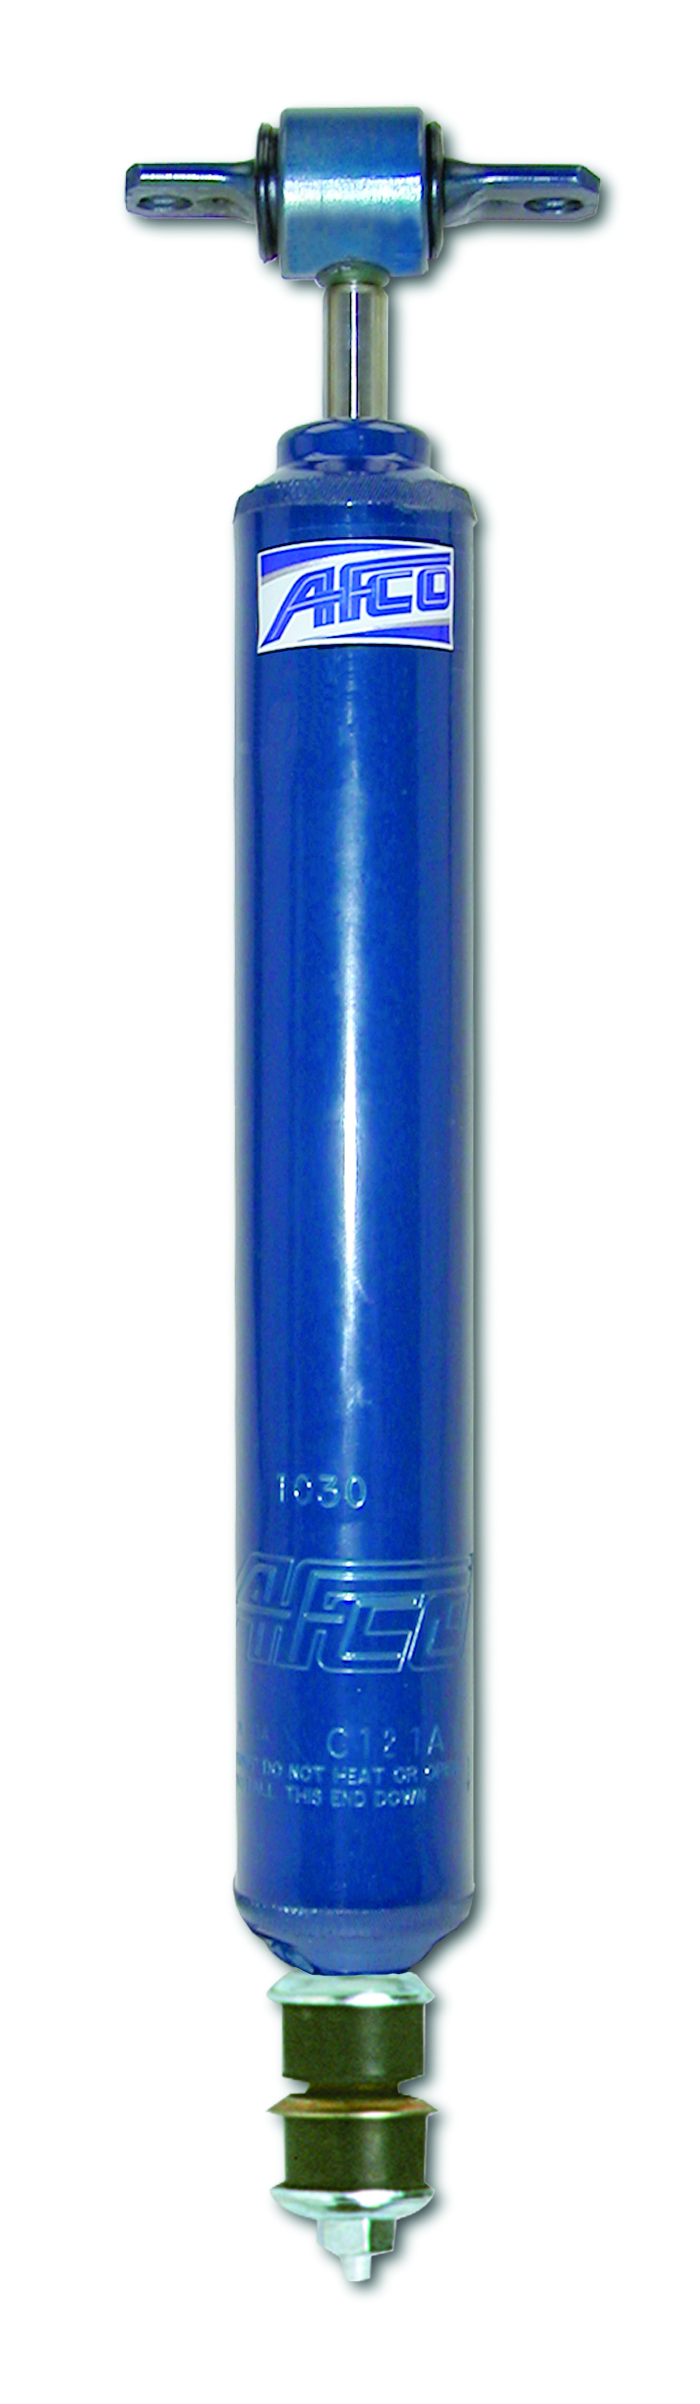 AFCO Racing Products 1032 Shock, 10 Series, Twintube, 14.50 in Compressed / 22.50 in Extended, 2.02 in OD, 5-5 Valve, Steel, Blue Paint, GM F-Body 1970-81, Each